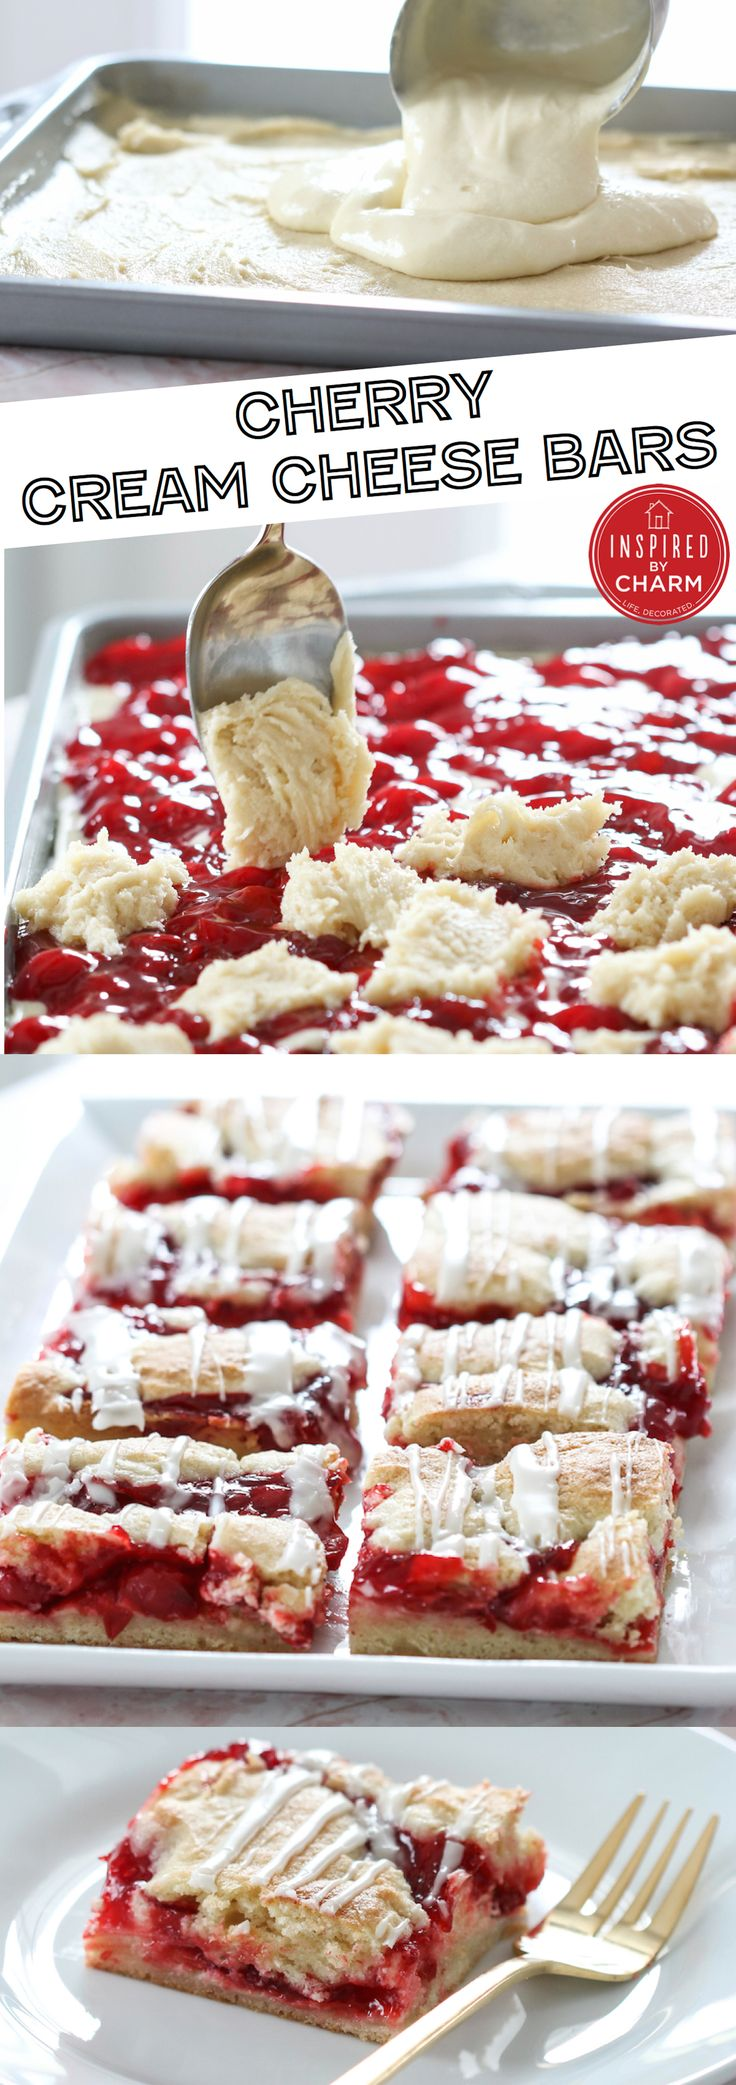 Cherry Cream Cheese Bars - a great breakfast treat or perfect for dessert!